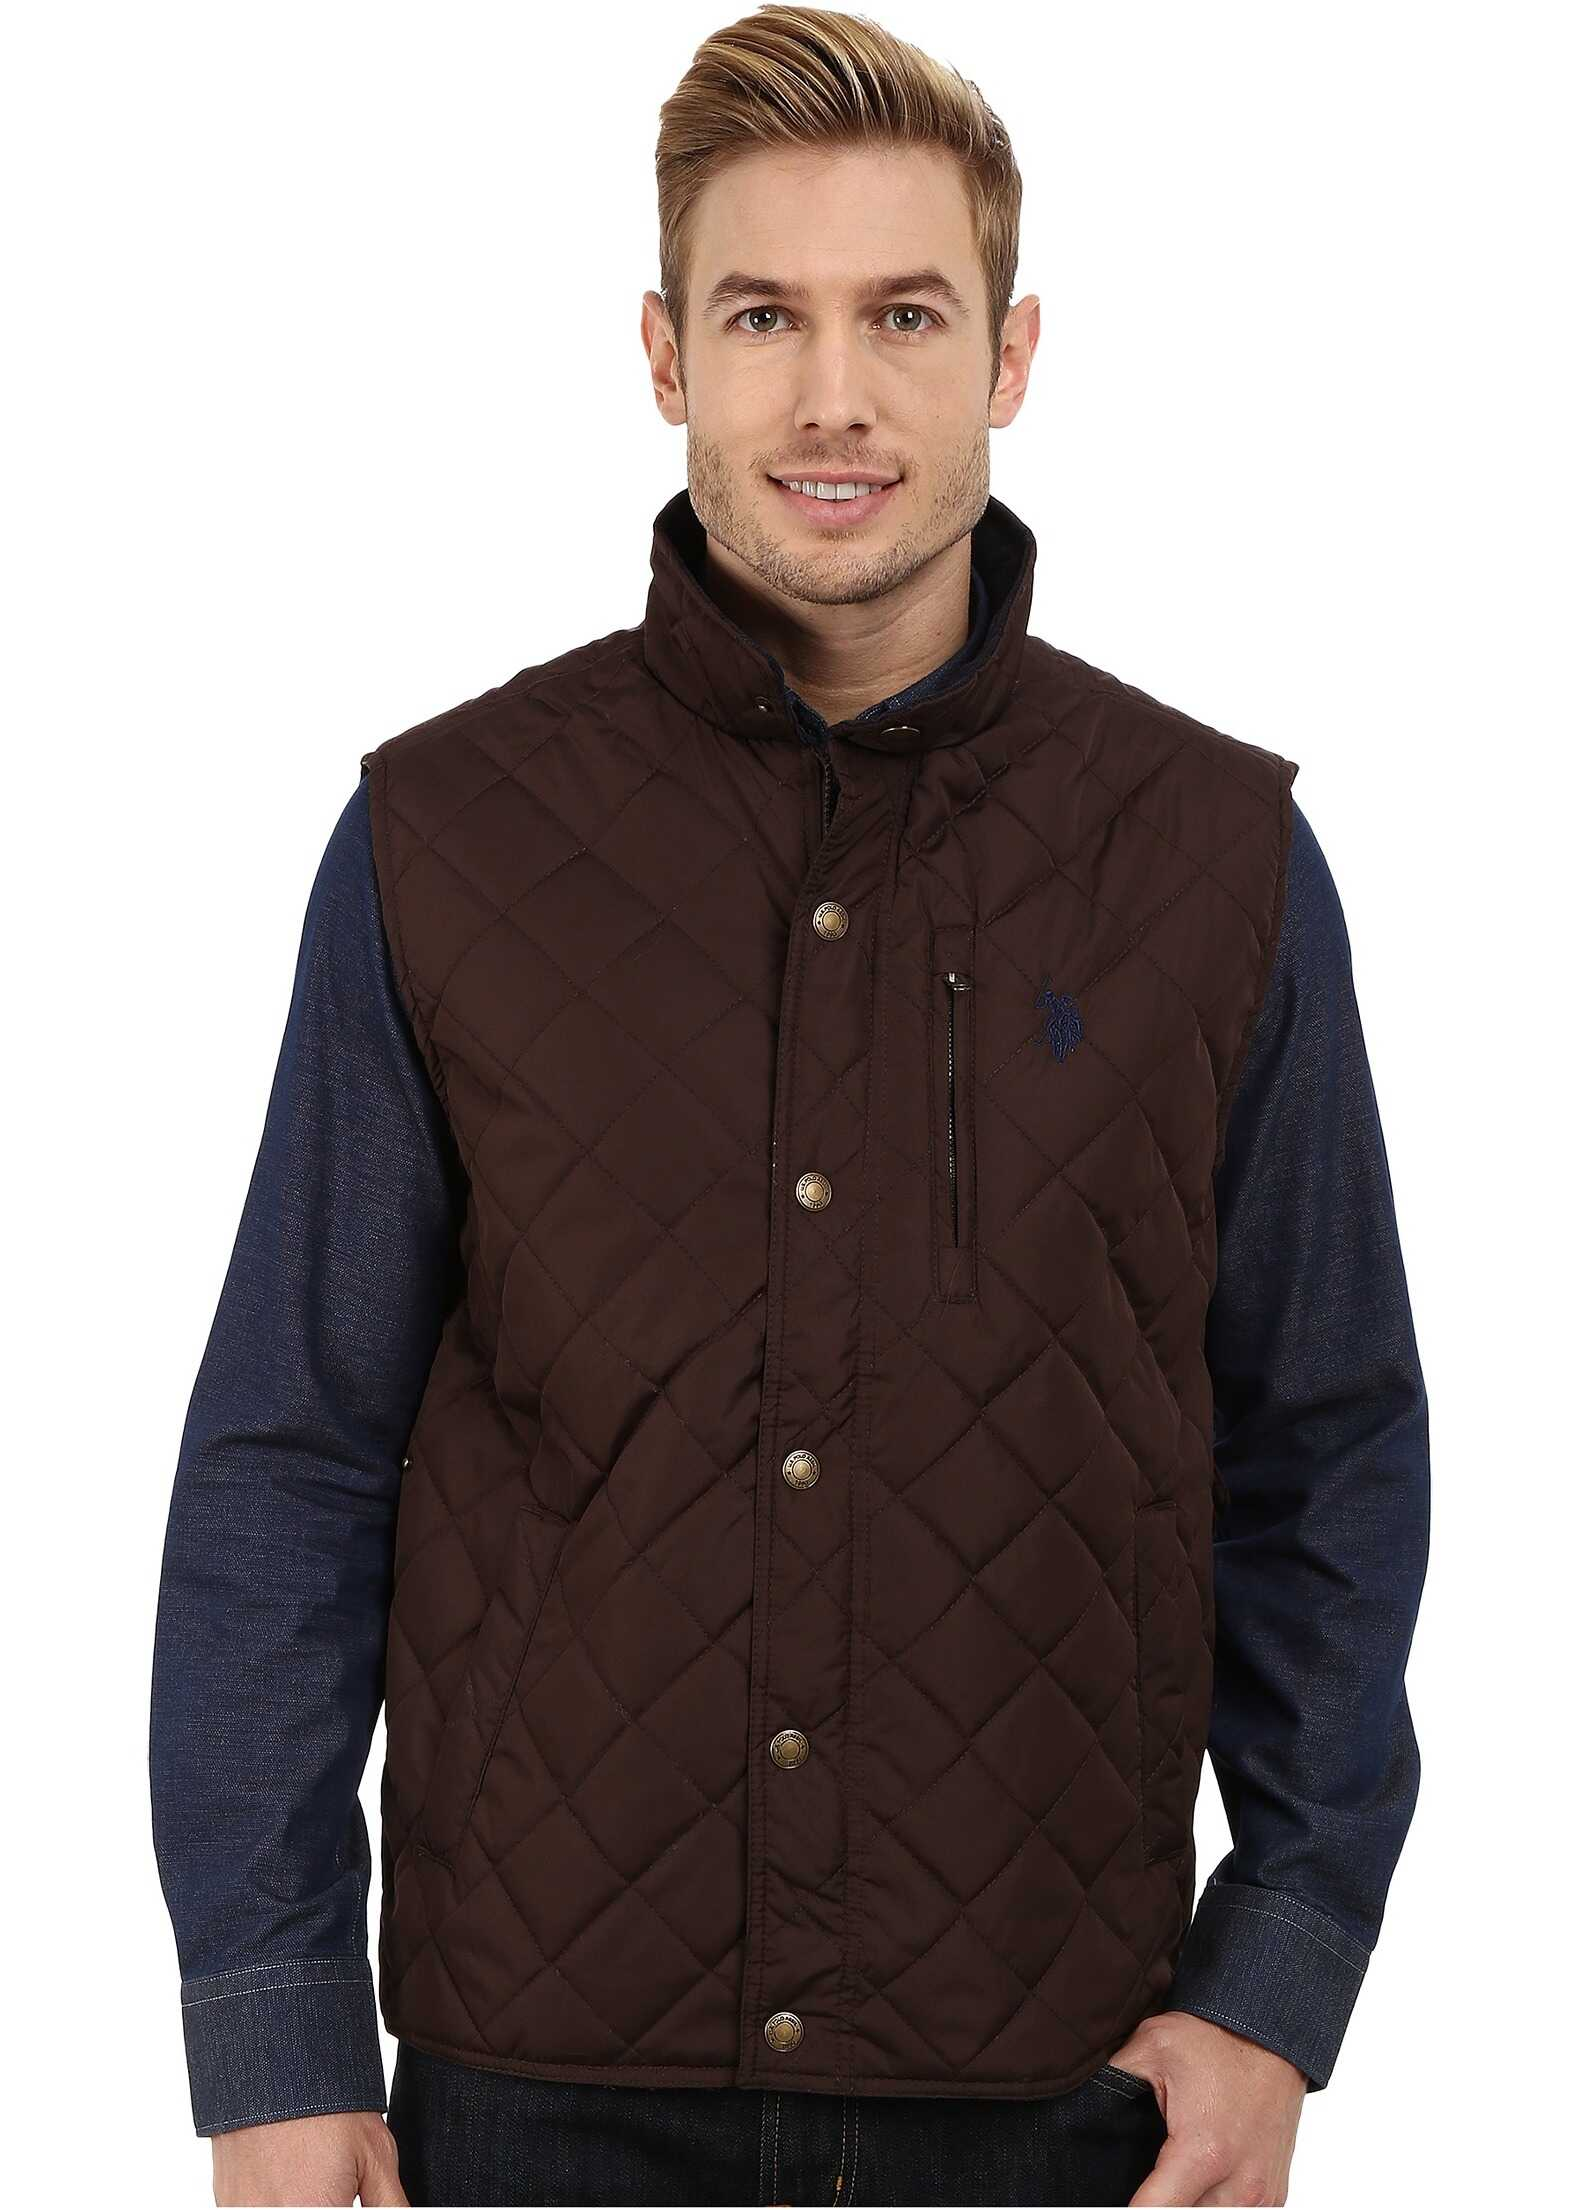 U.S. POLO ASSN. Diamond Quilted Vest with Corduroy Collar Dark Brown